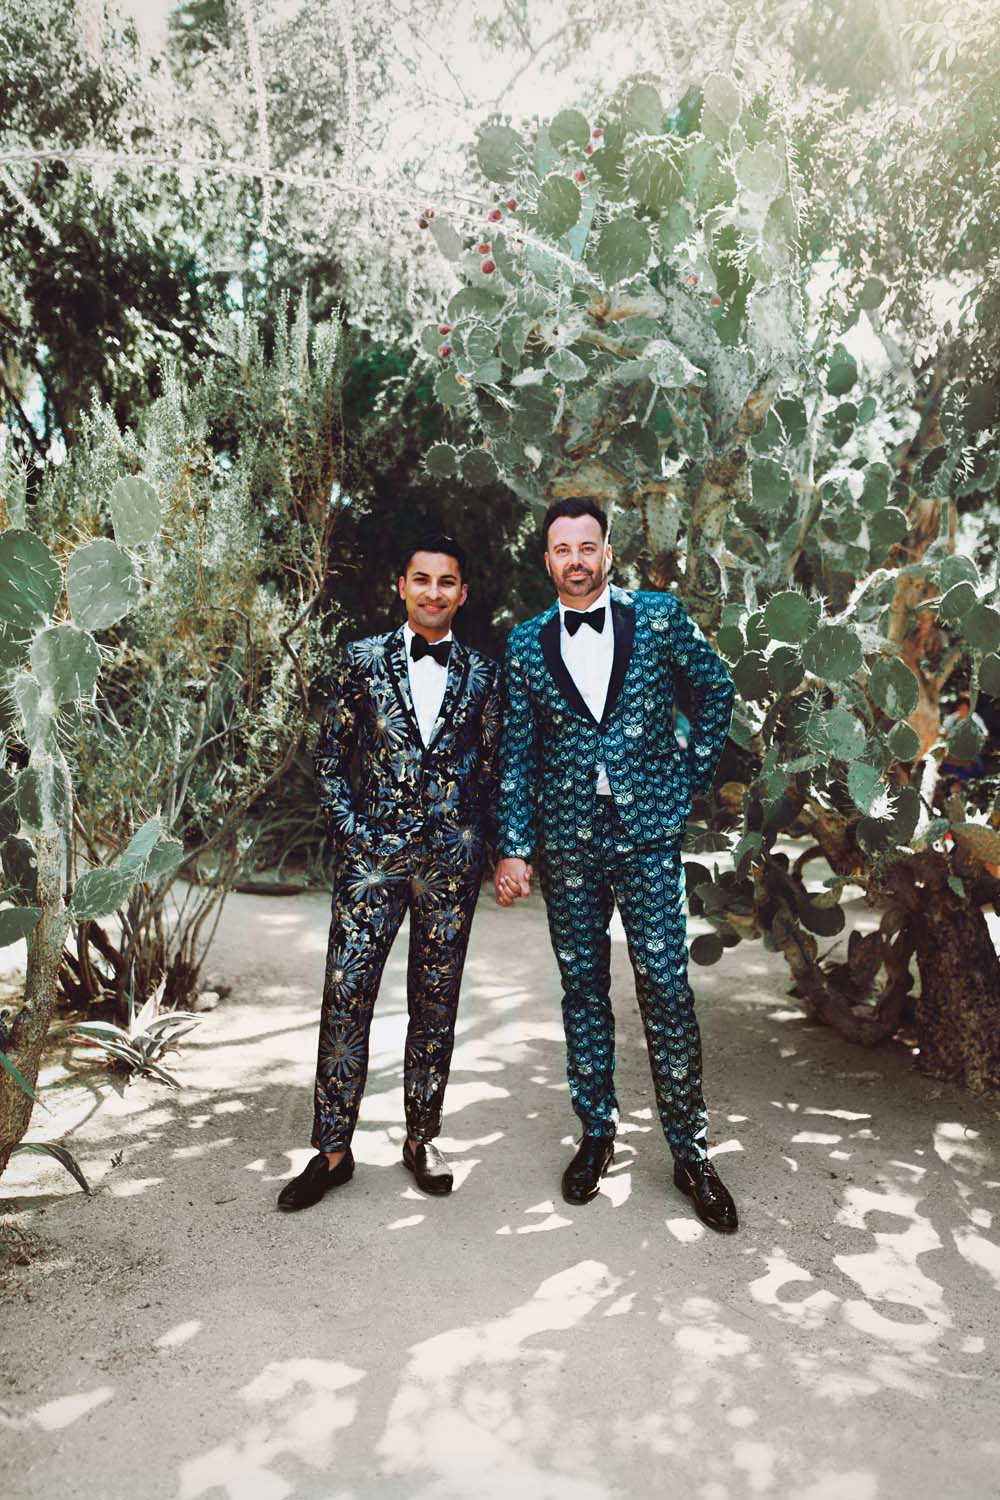 from Alan palm springs gay wedding package